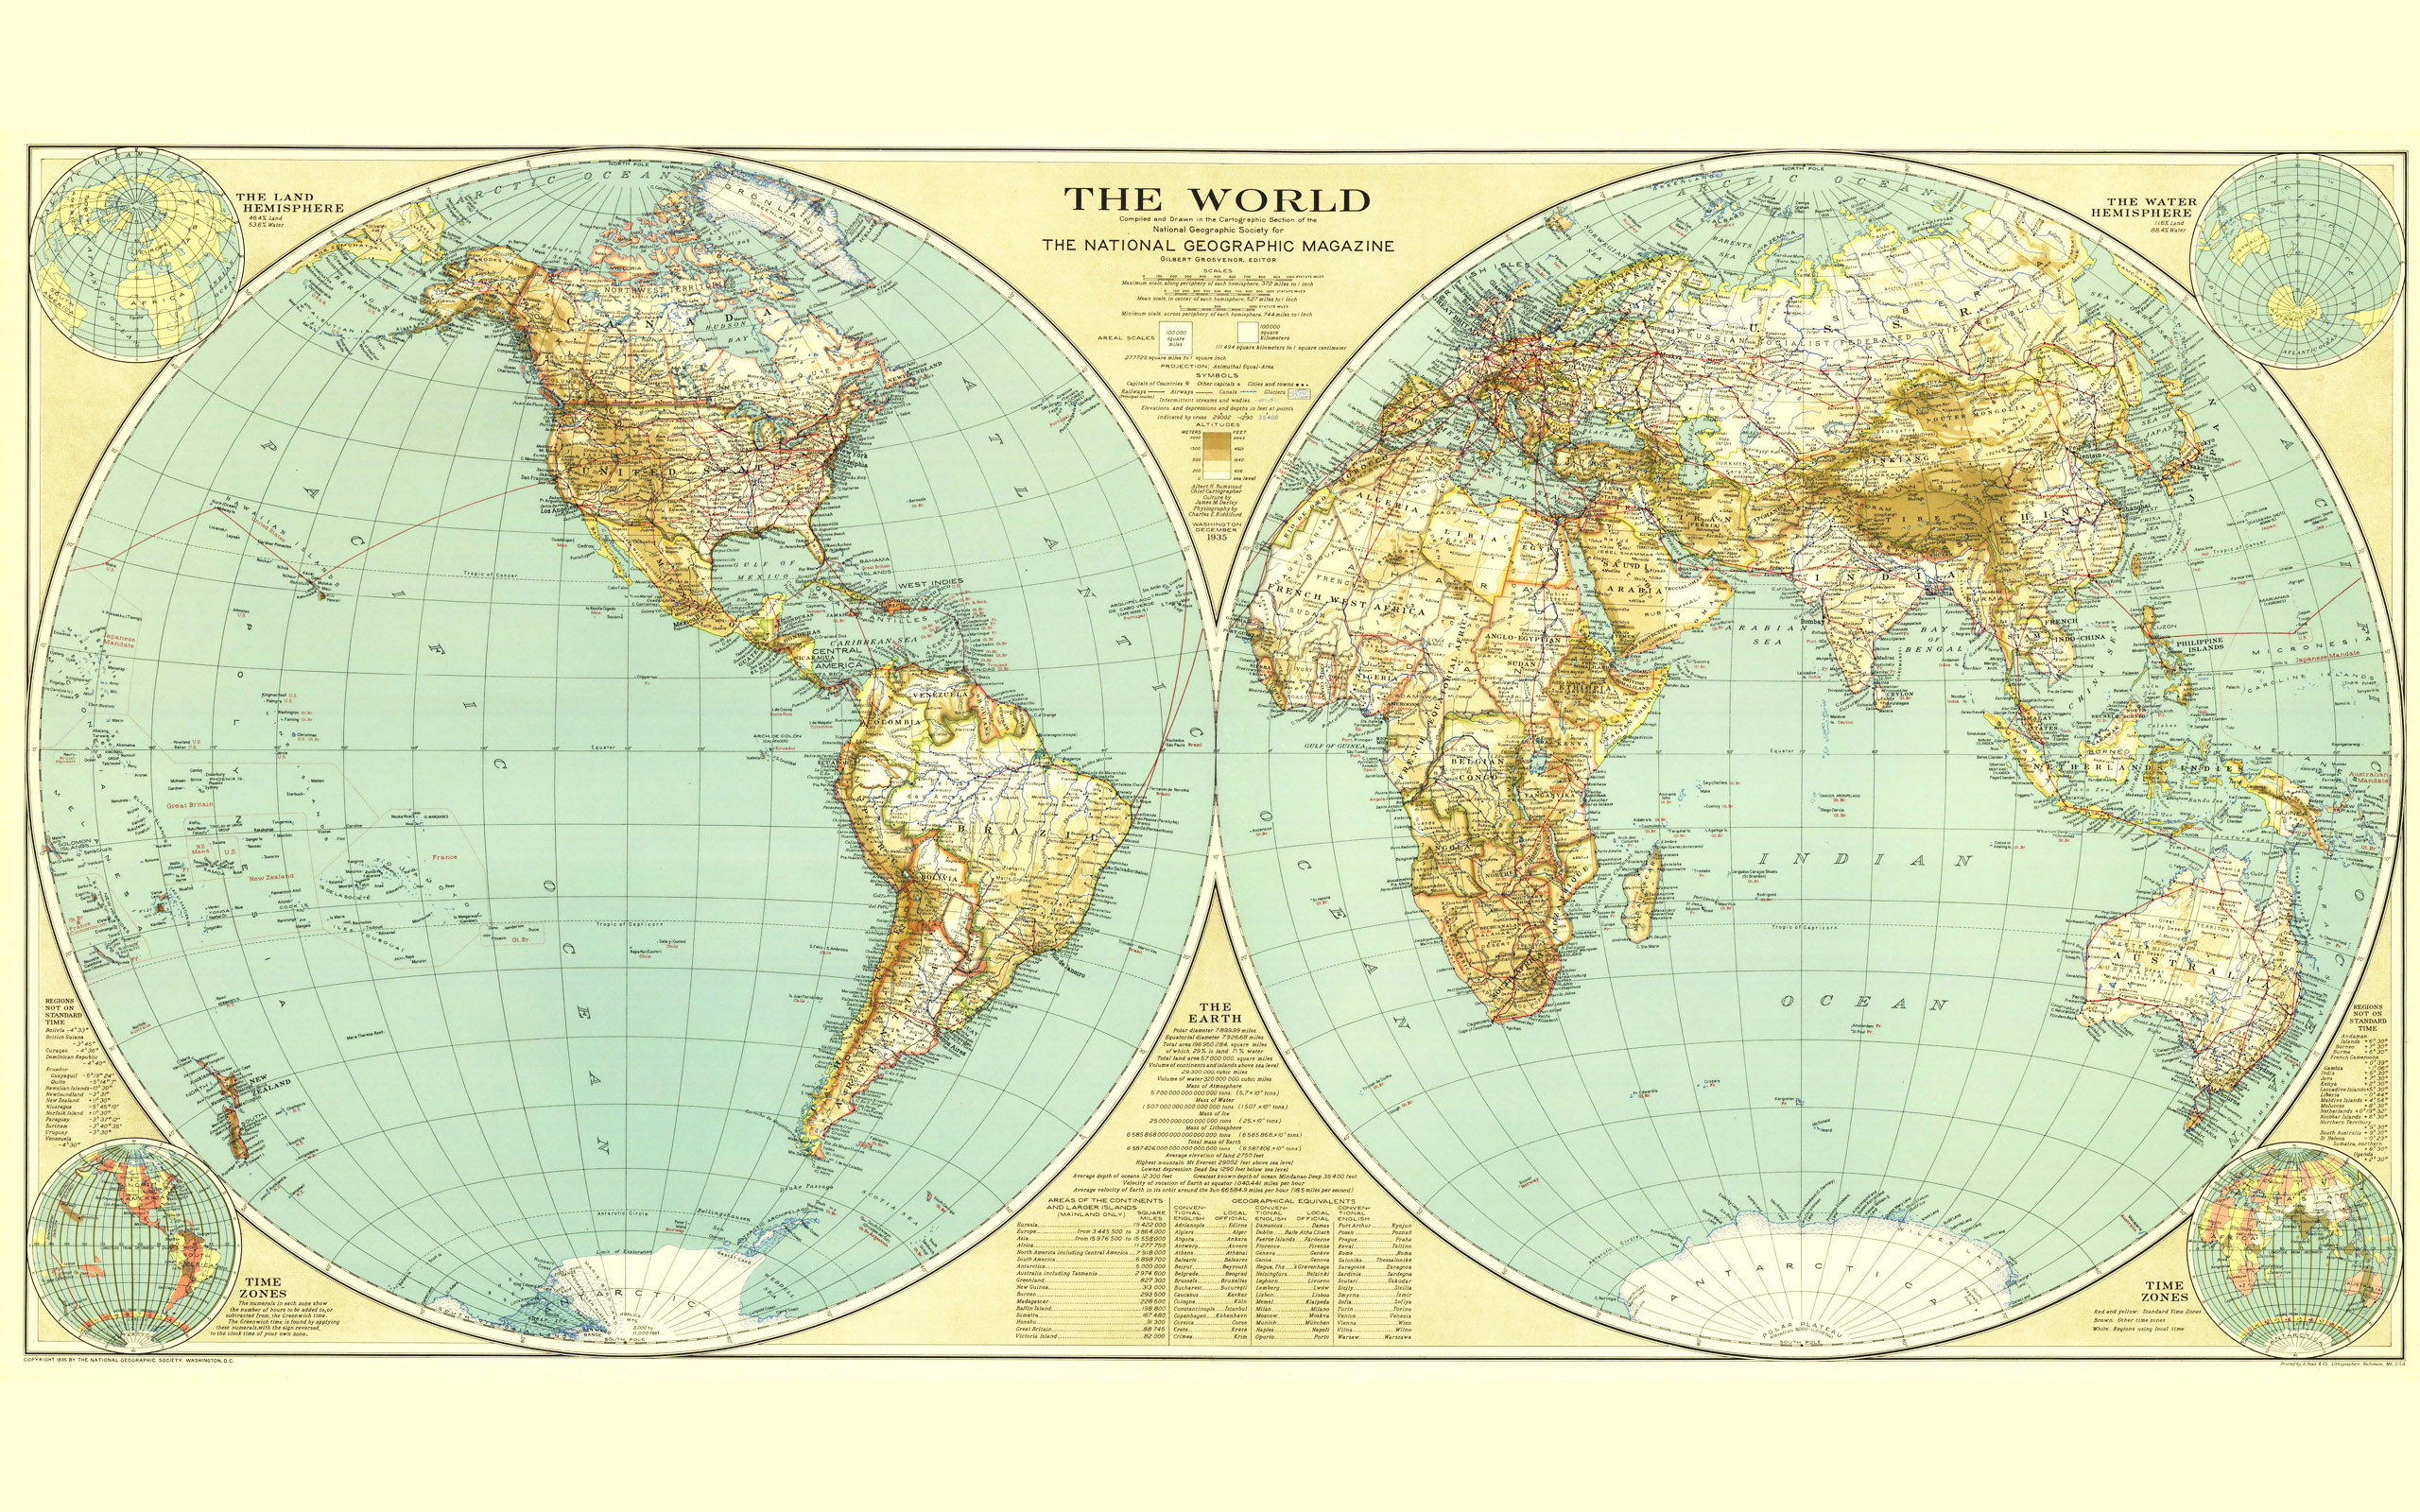 National Geographic world map wallpaper | 2560x1600 | 183816 ...